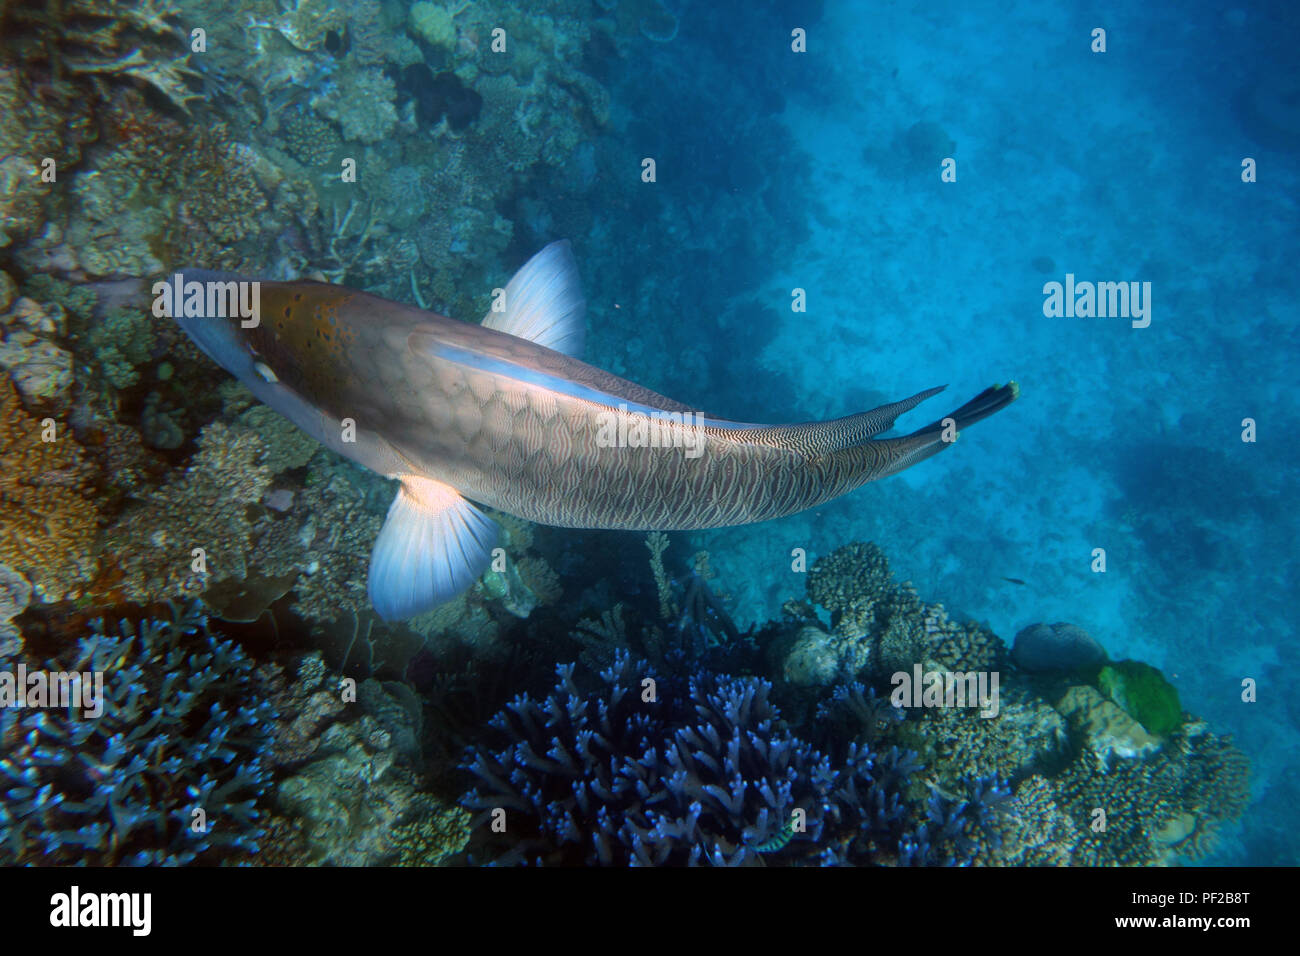 Large maori wrasse (Cheilinus undulatus) showing details of pectoral fins, Moore Reef, Great Barrier Reef, near Cairns, Queensland, Australia - Stock Image